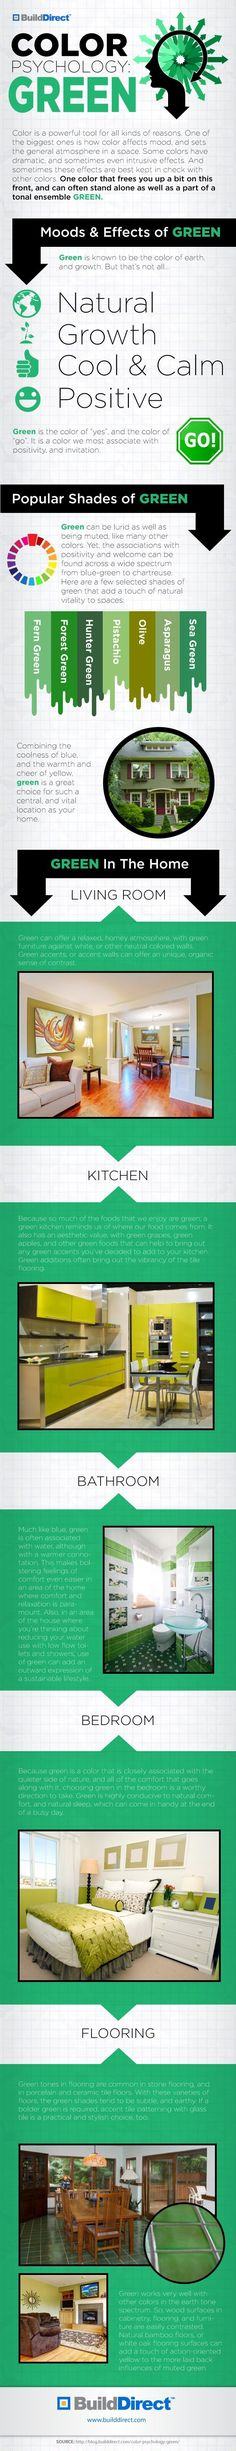 Color Psychology Green copy Emotional Interior Design: Using Green